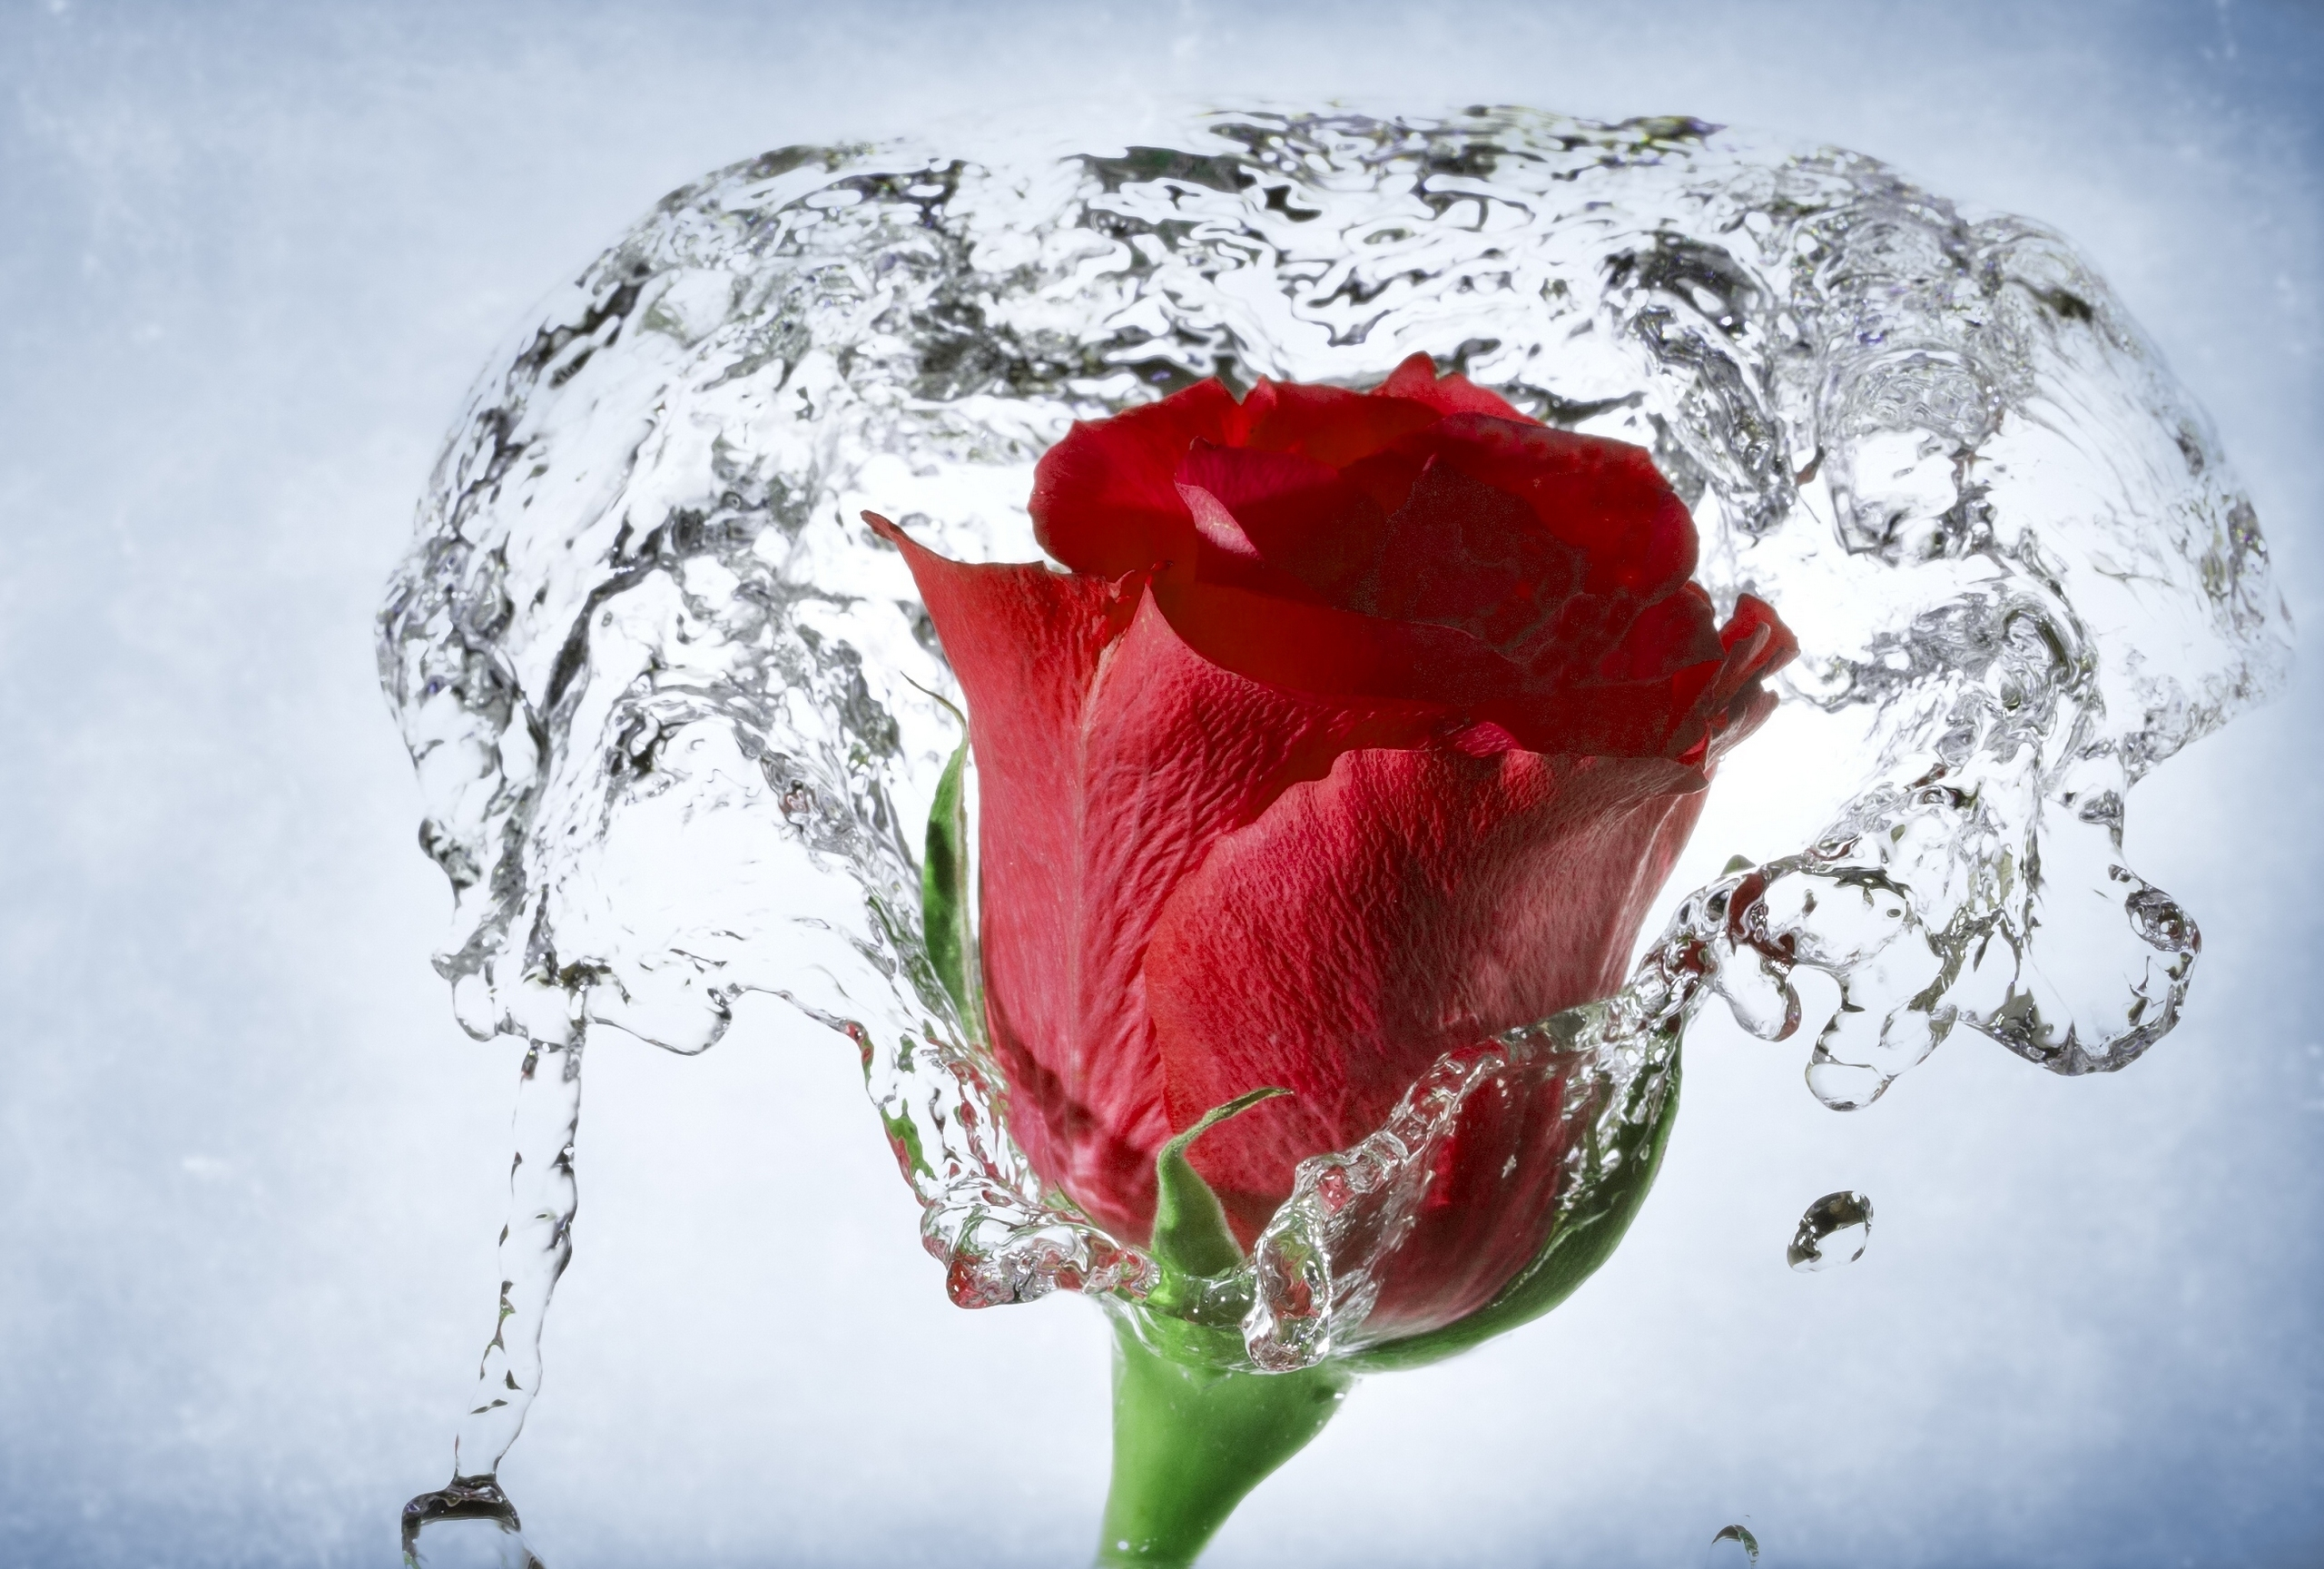 Rose Red With Water So Beautiful Free Hd Wallpaper Hd Wallpaper